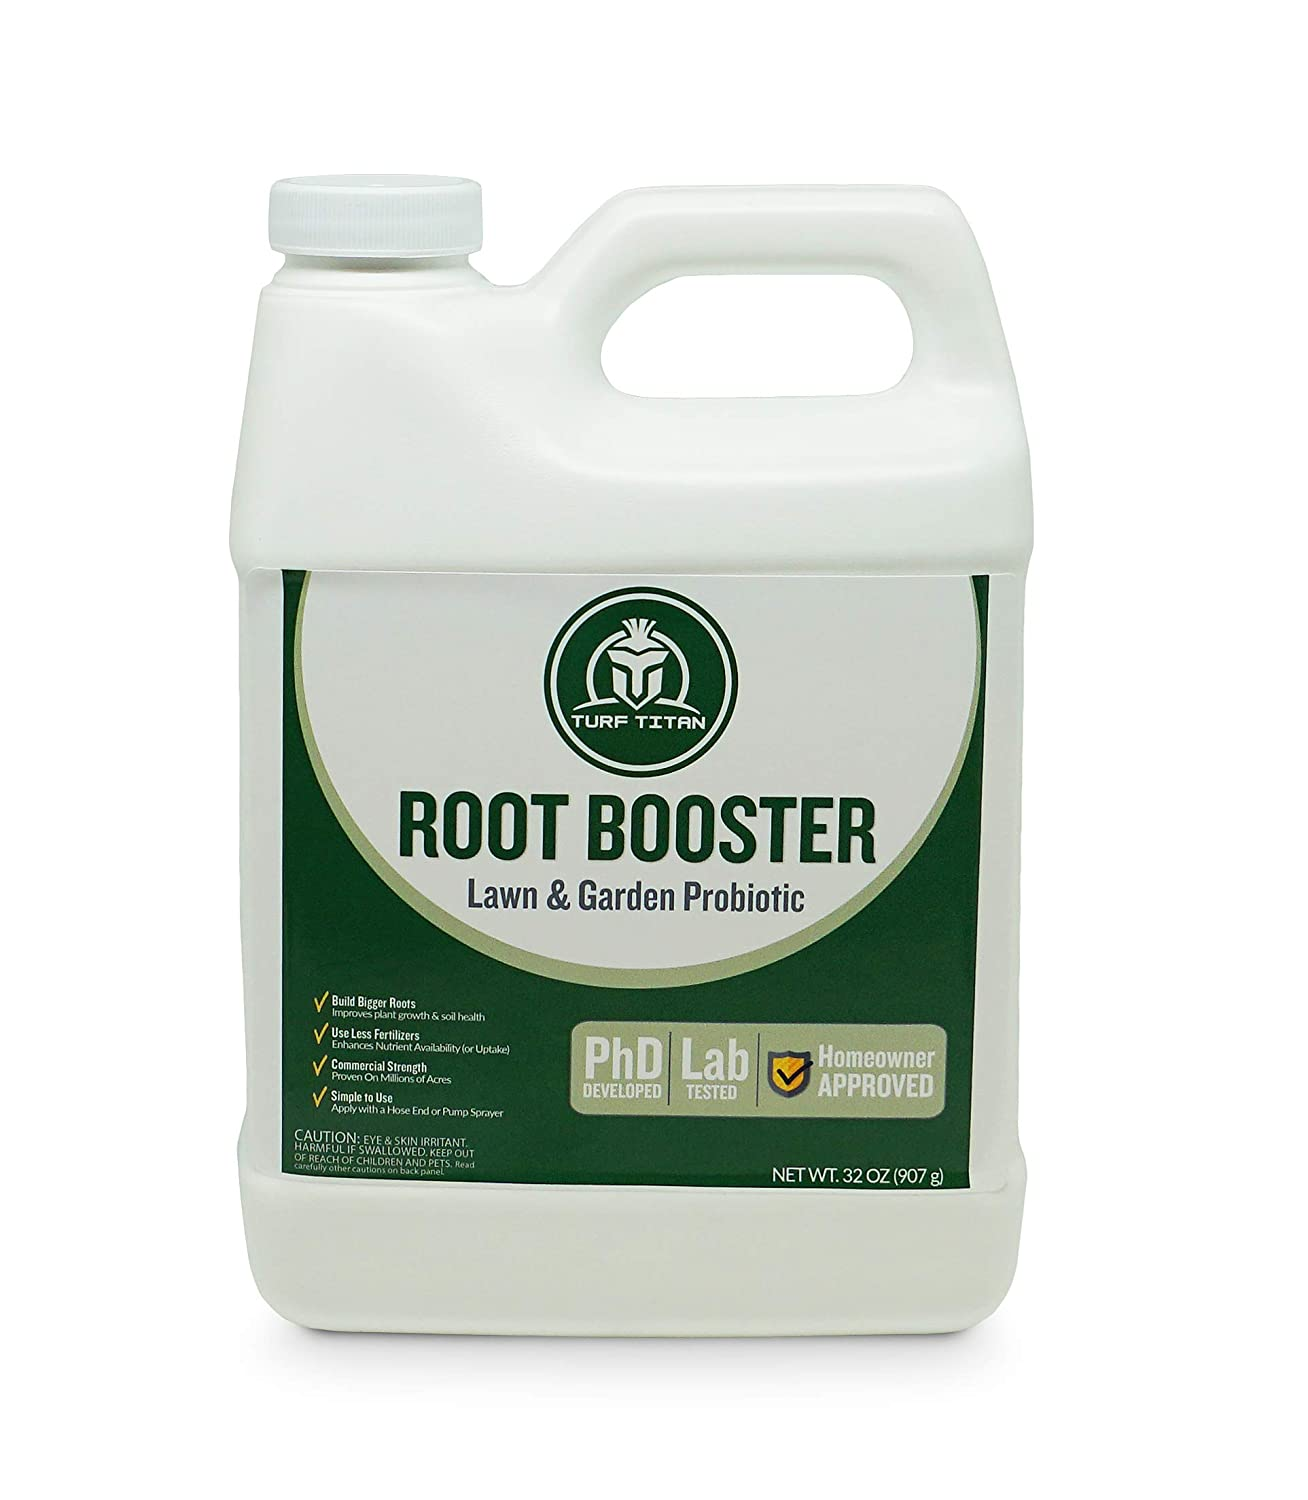 Root Booster by Turf Titan - Lawn & Garden Probiotic 32 oz